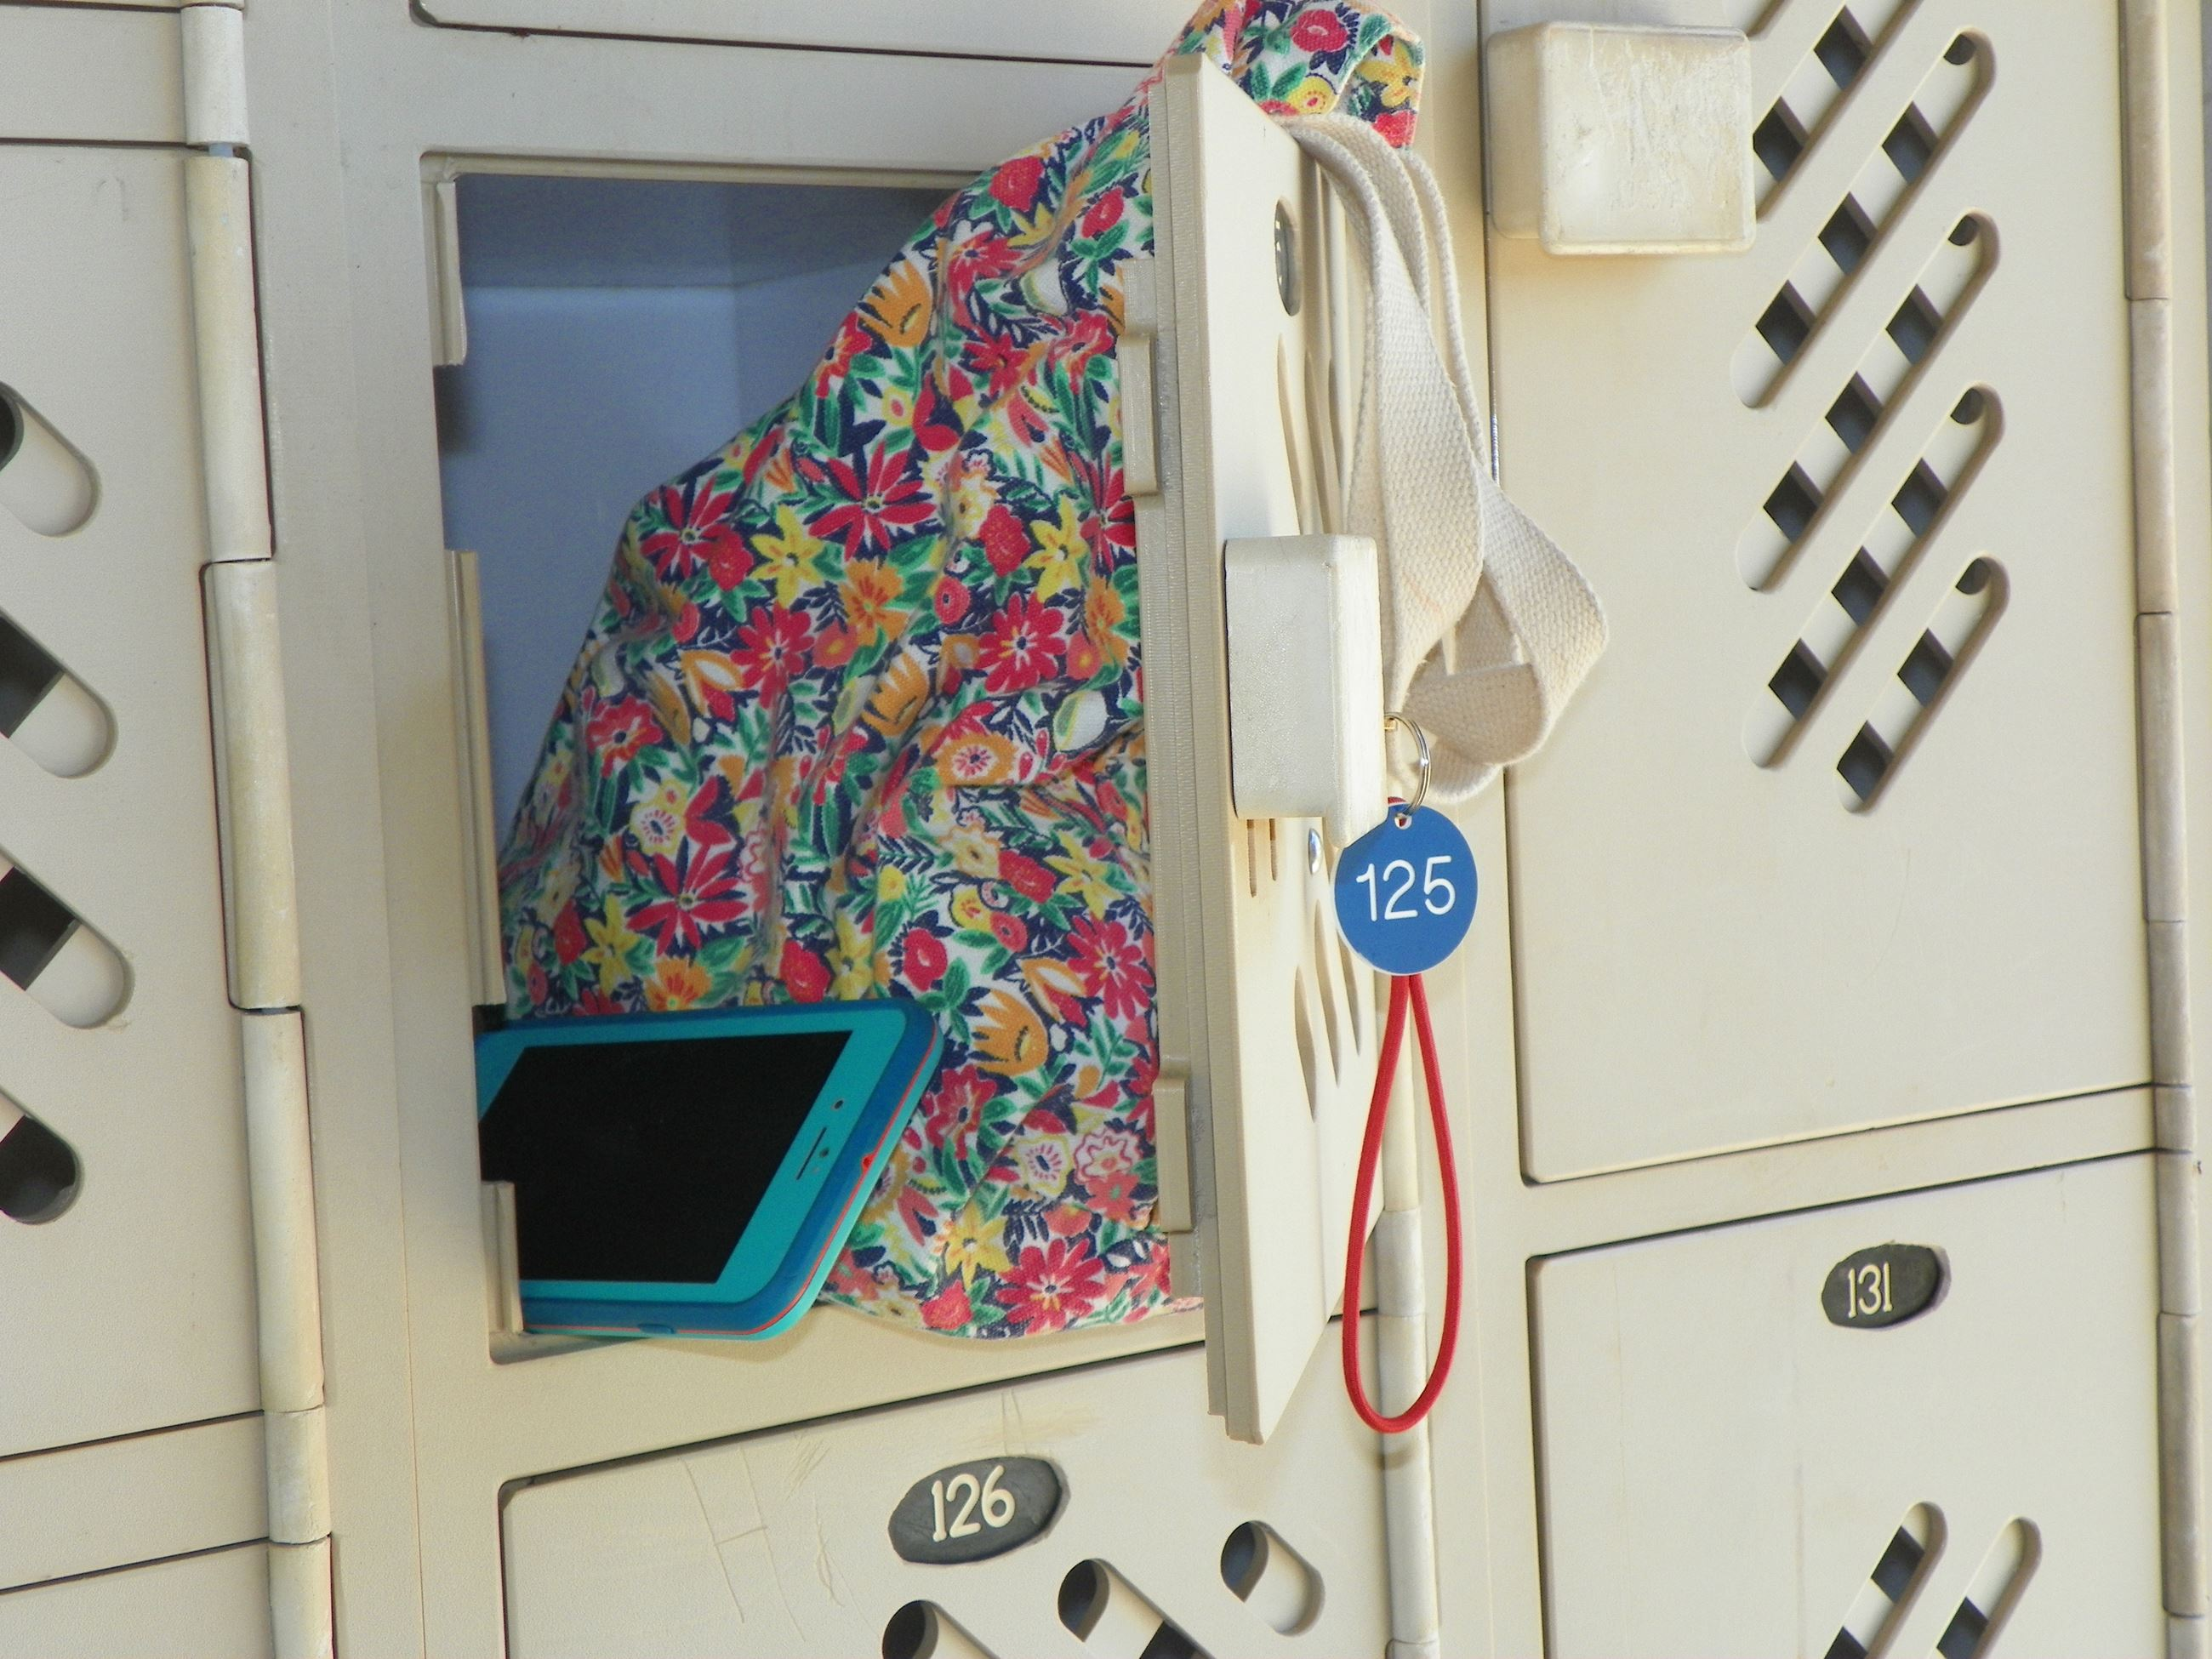 lockers at the aquatic center